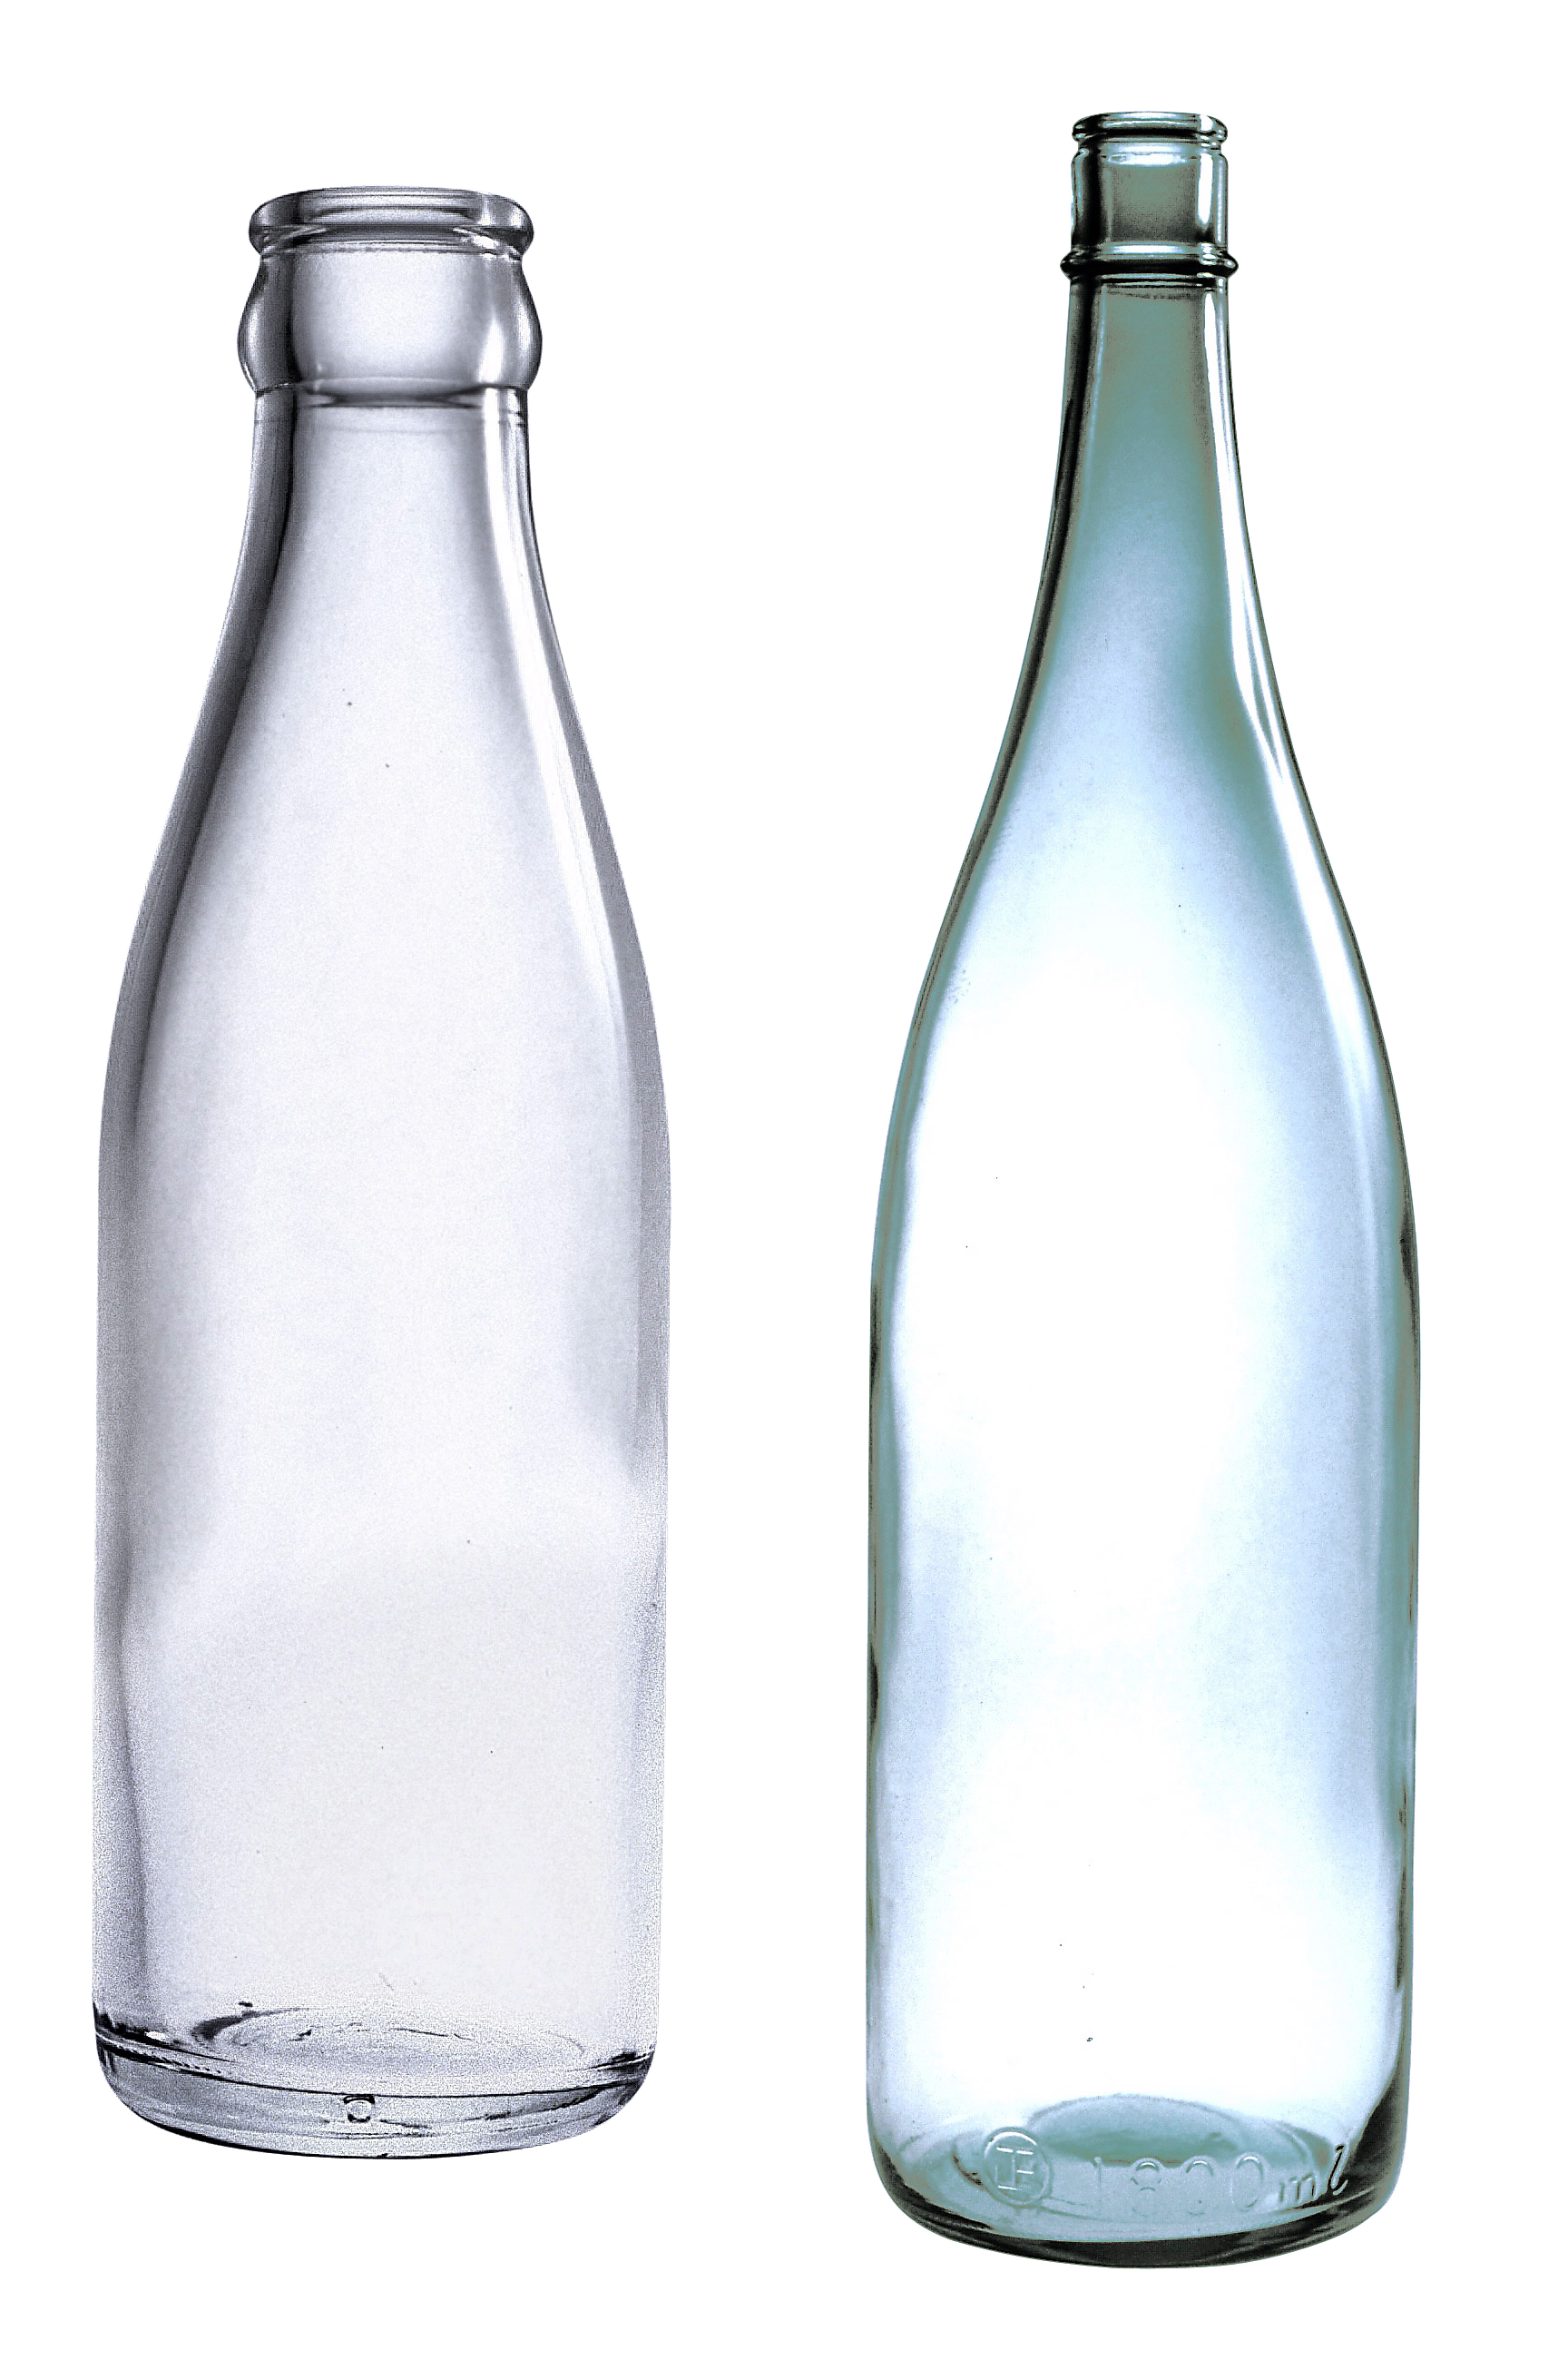 Empty soda bottle png. Images free download home